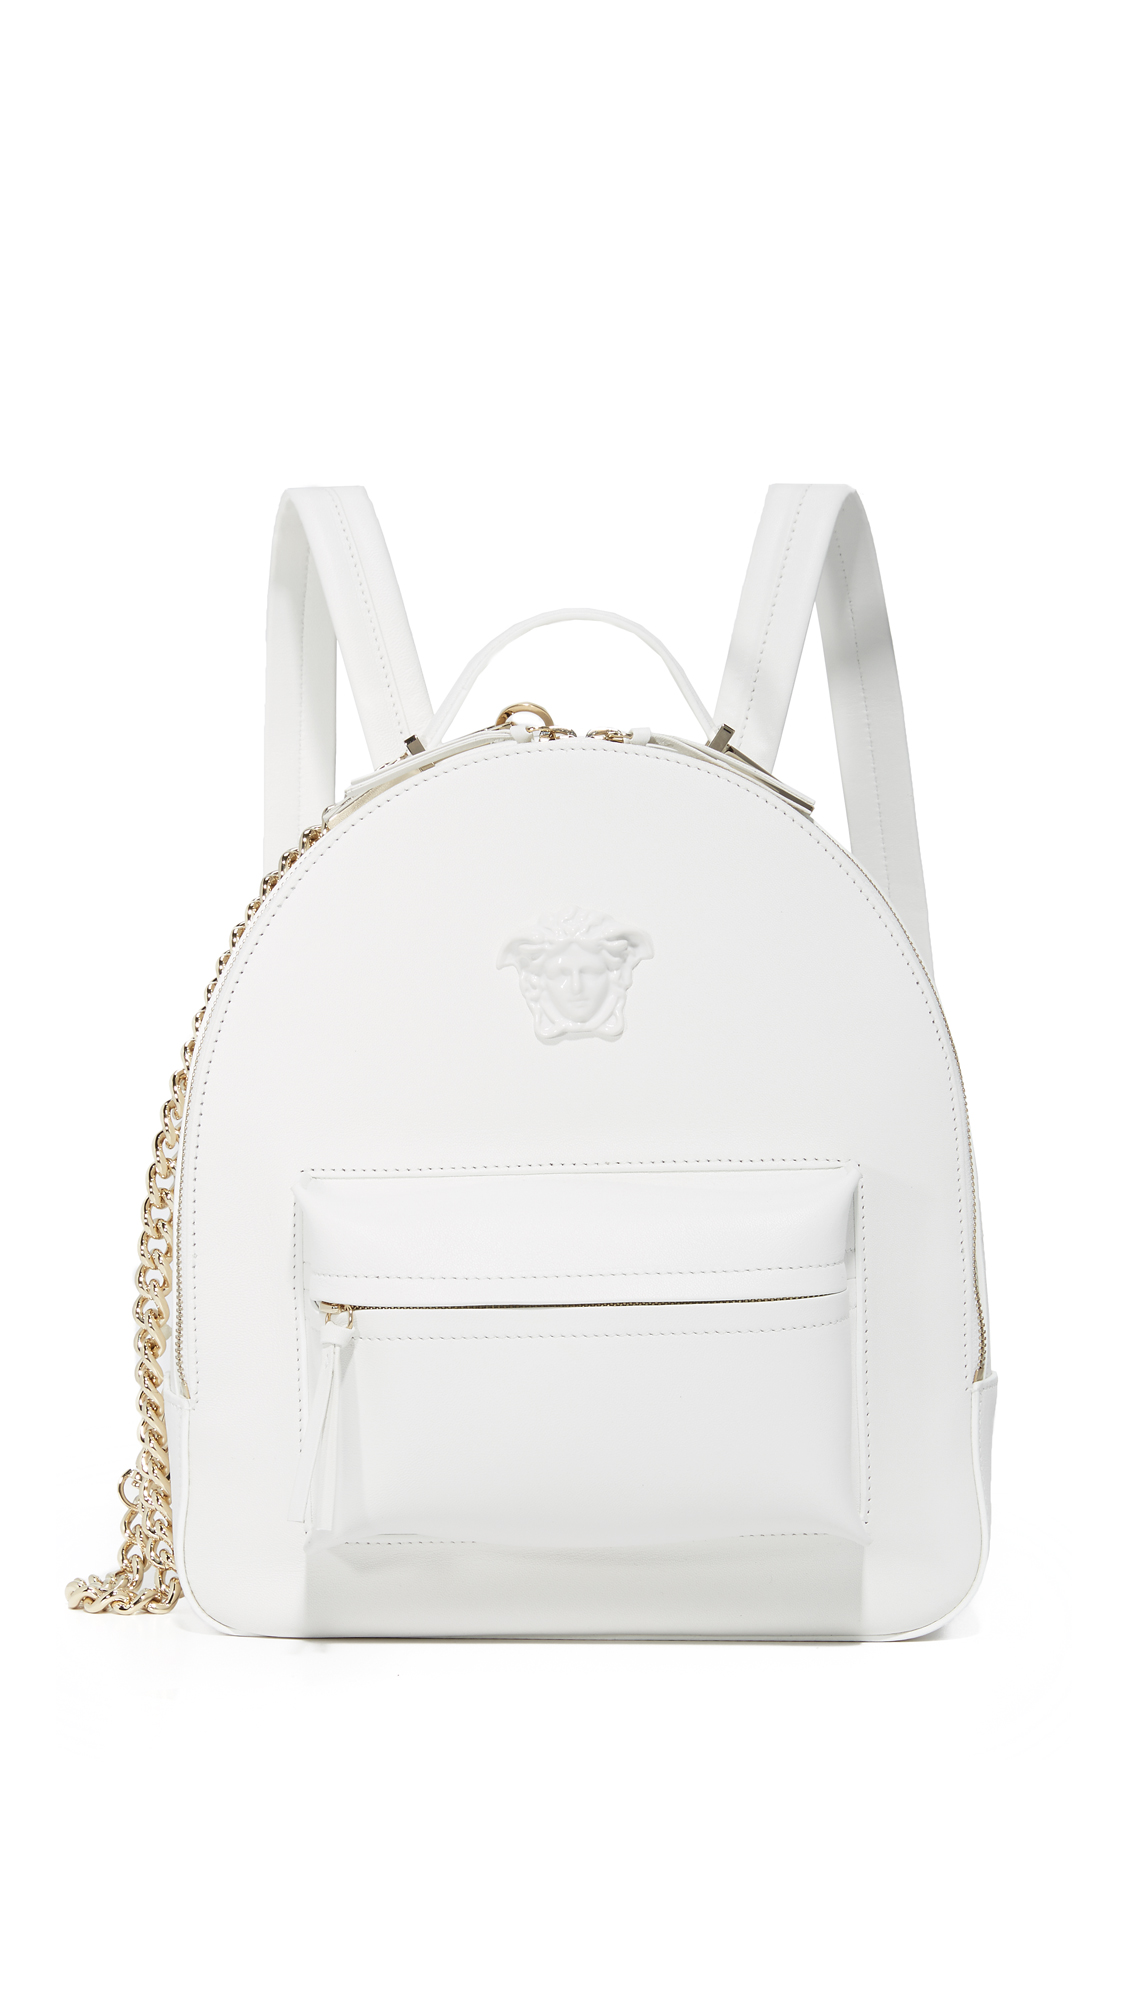 A bright leather Versace backpack detailed with a signature Medusa medallion. Front zip pocket. The wraparound top zip opens to a lined, 1 pocket interior. Locker loop and adjustable shoulder straps. Dust bag included. Leather: Calfskin. Weight: 37